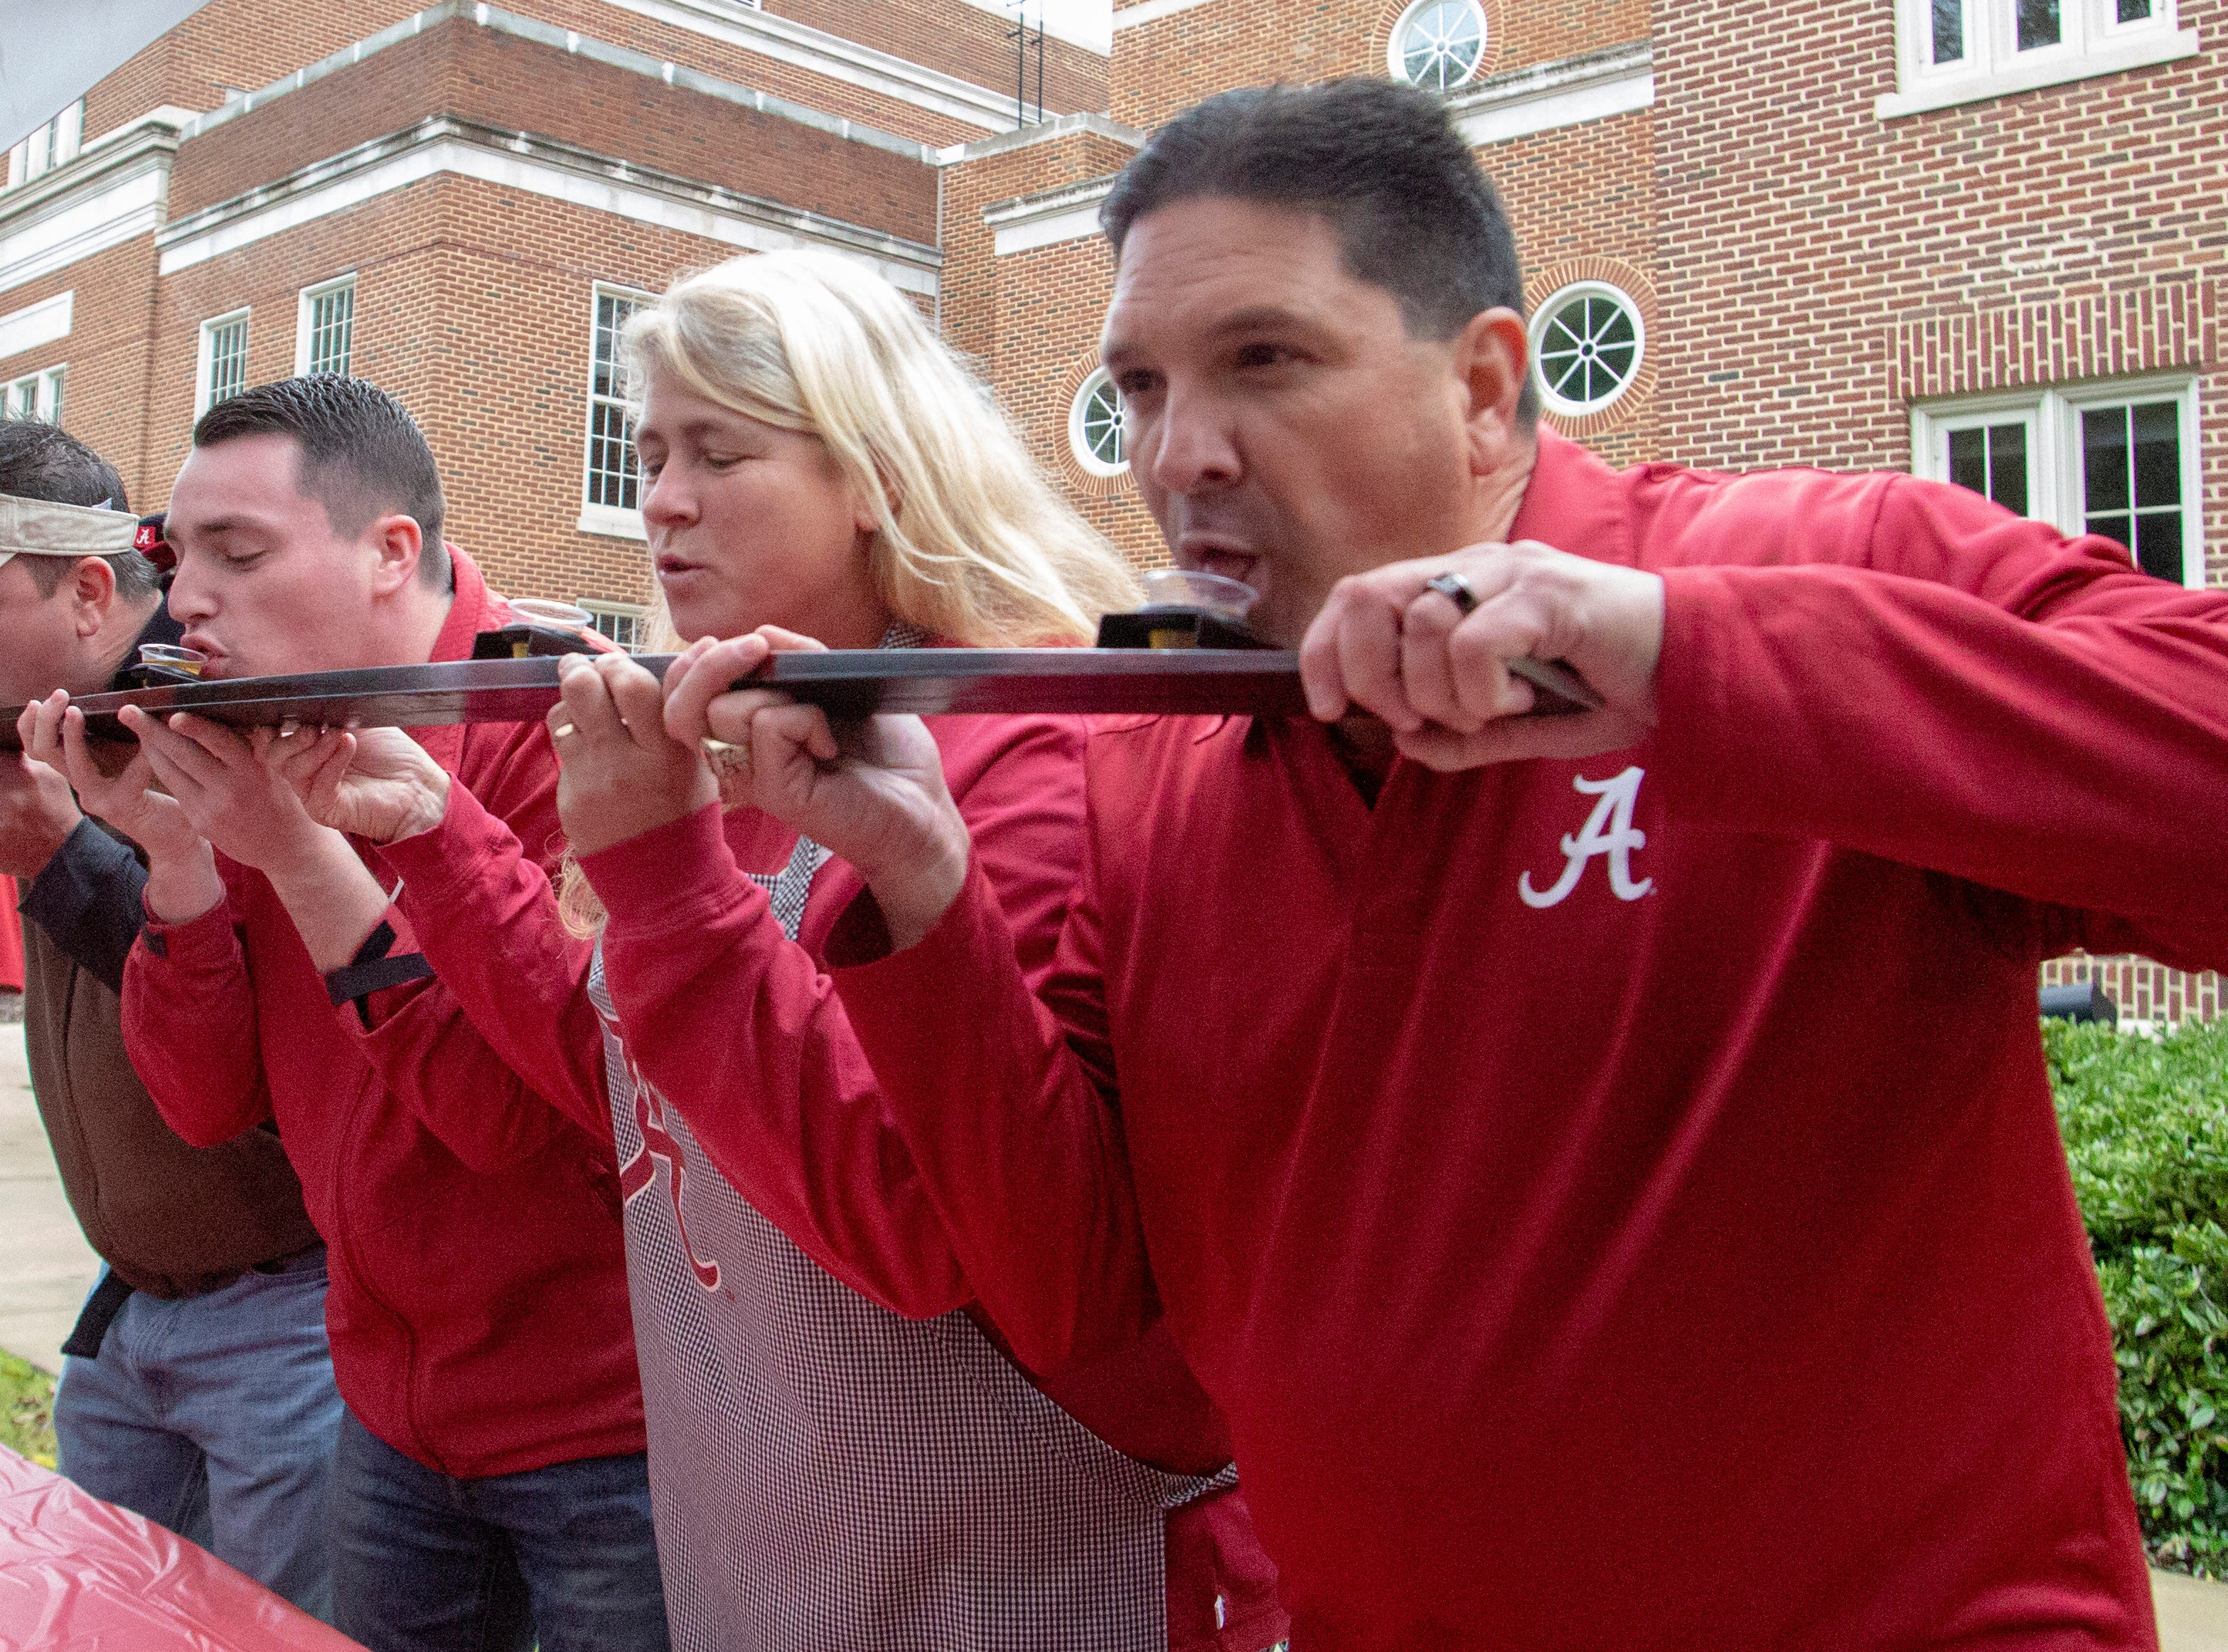 Alabama fans John Higginbotham, Jason Kaylan, Scotty Baker and Brian Ray take shots from a ski.